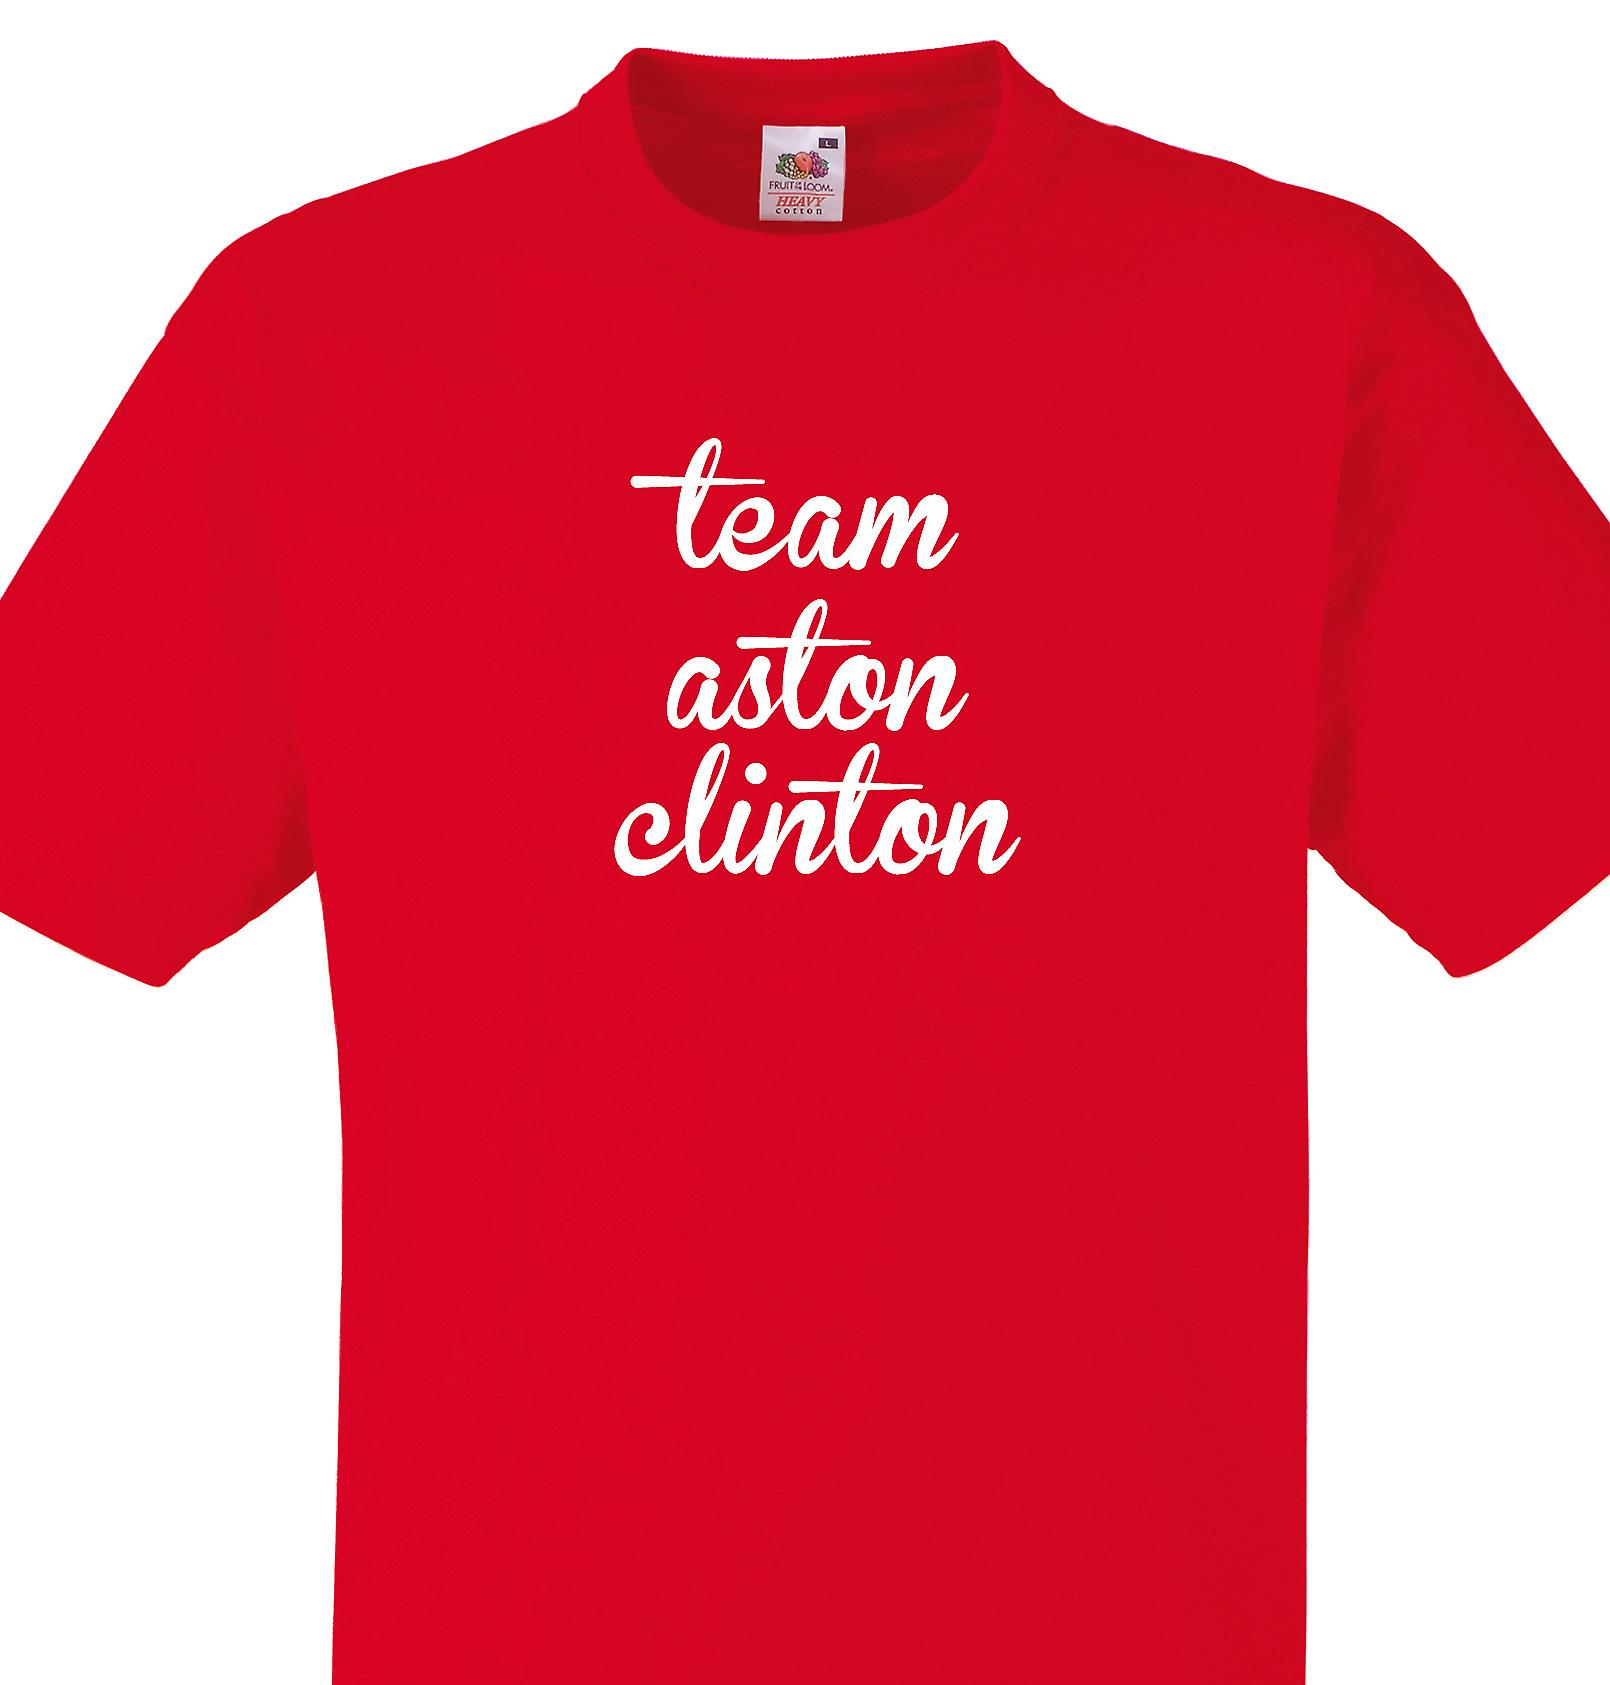 Team Aston clinton Red T shirt